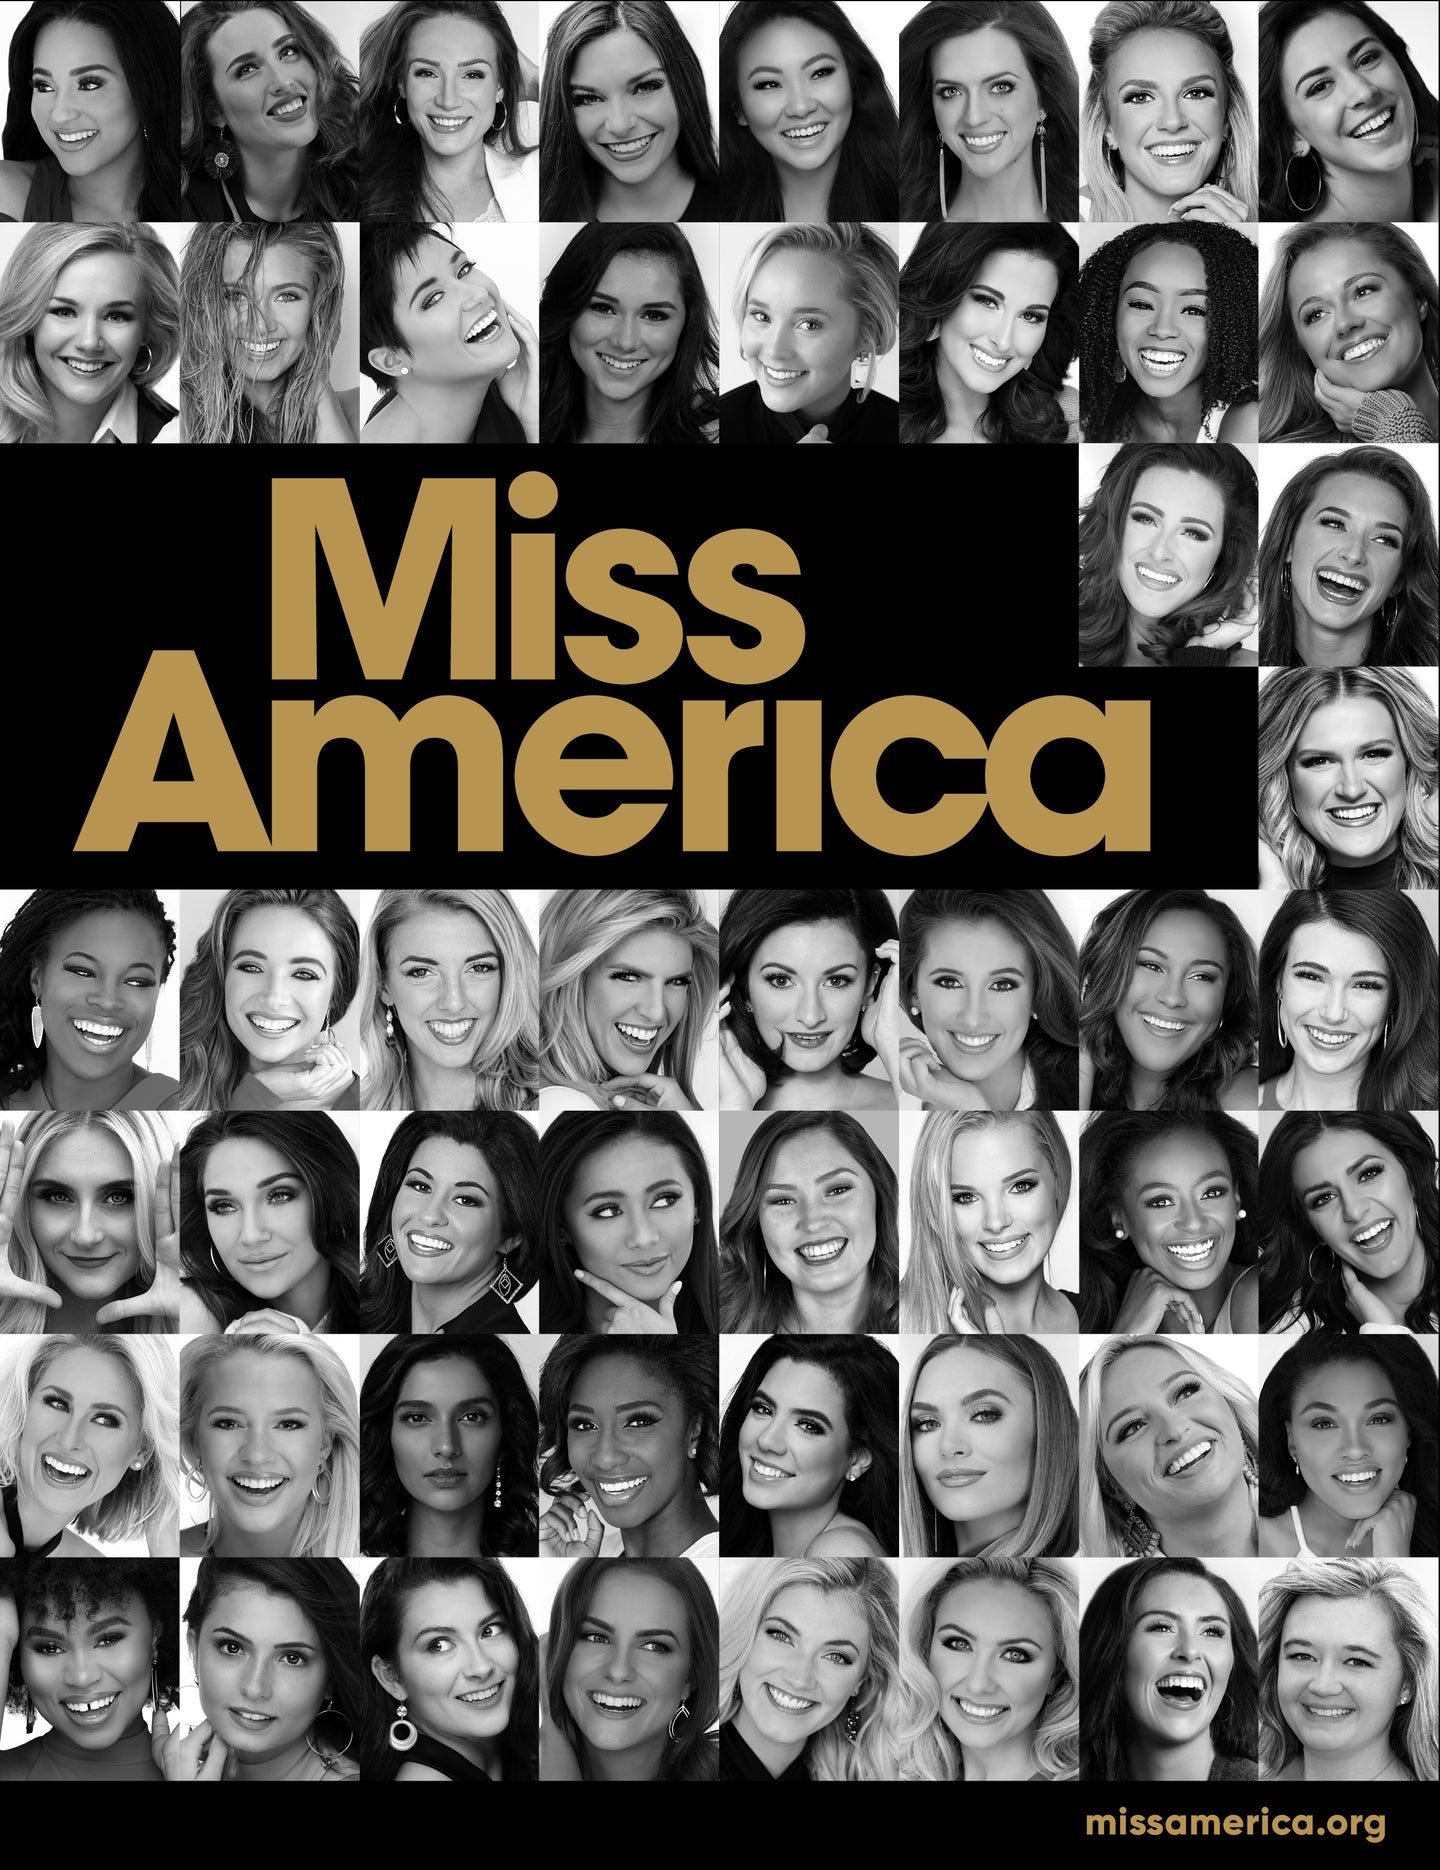 MISS AMERICA SPECIAL EDITION COMMEMORATIVE YEARBOOK - 2020